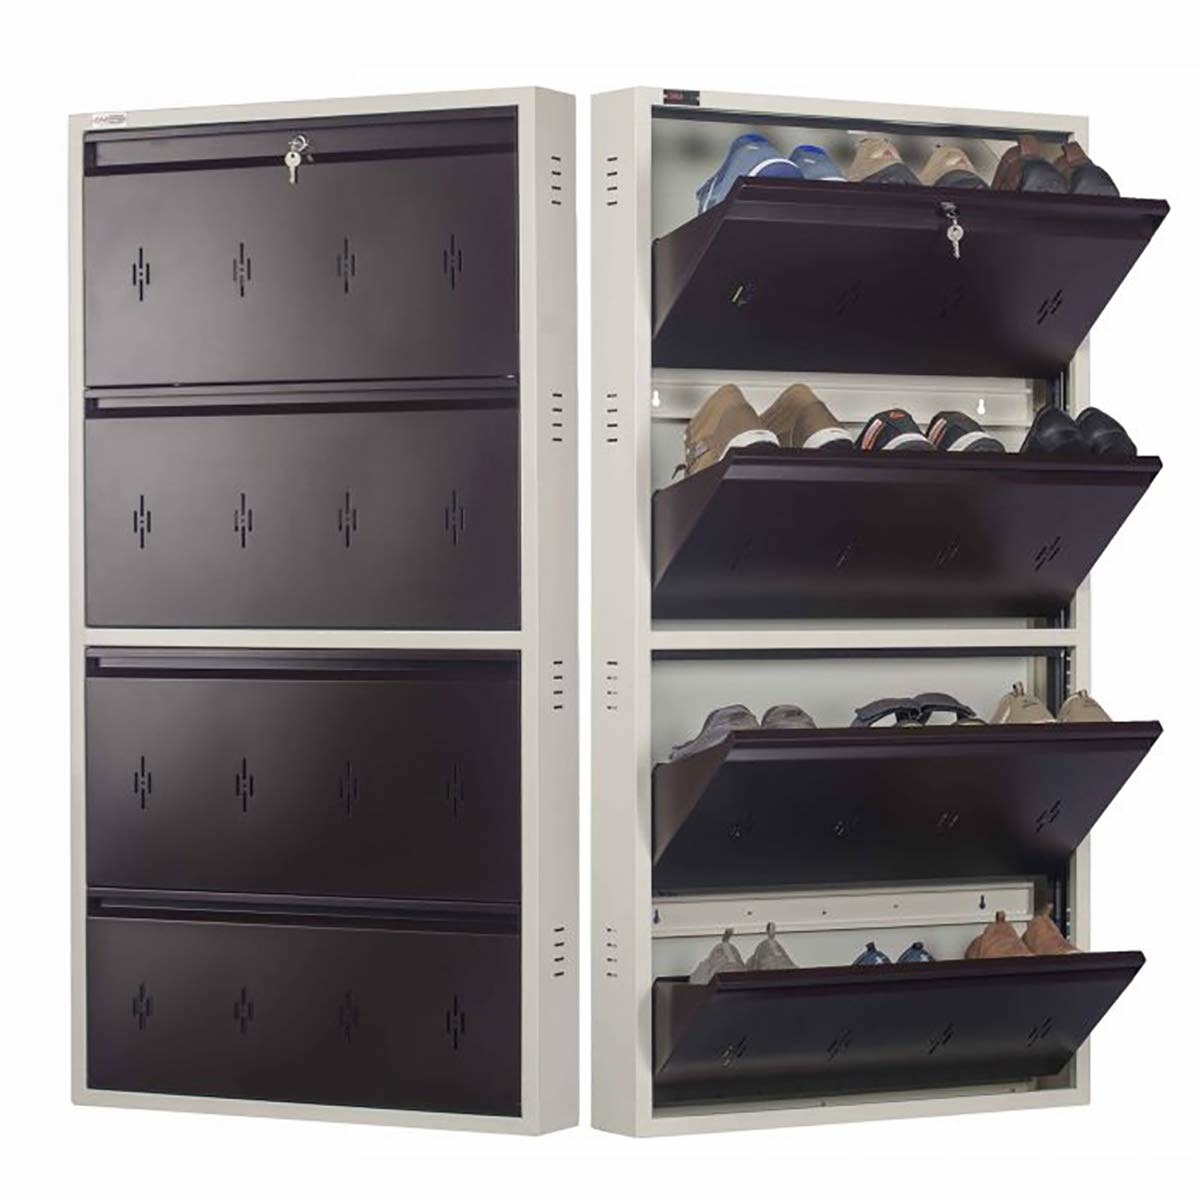 A shoe rack showing both closed and open racks.